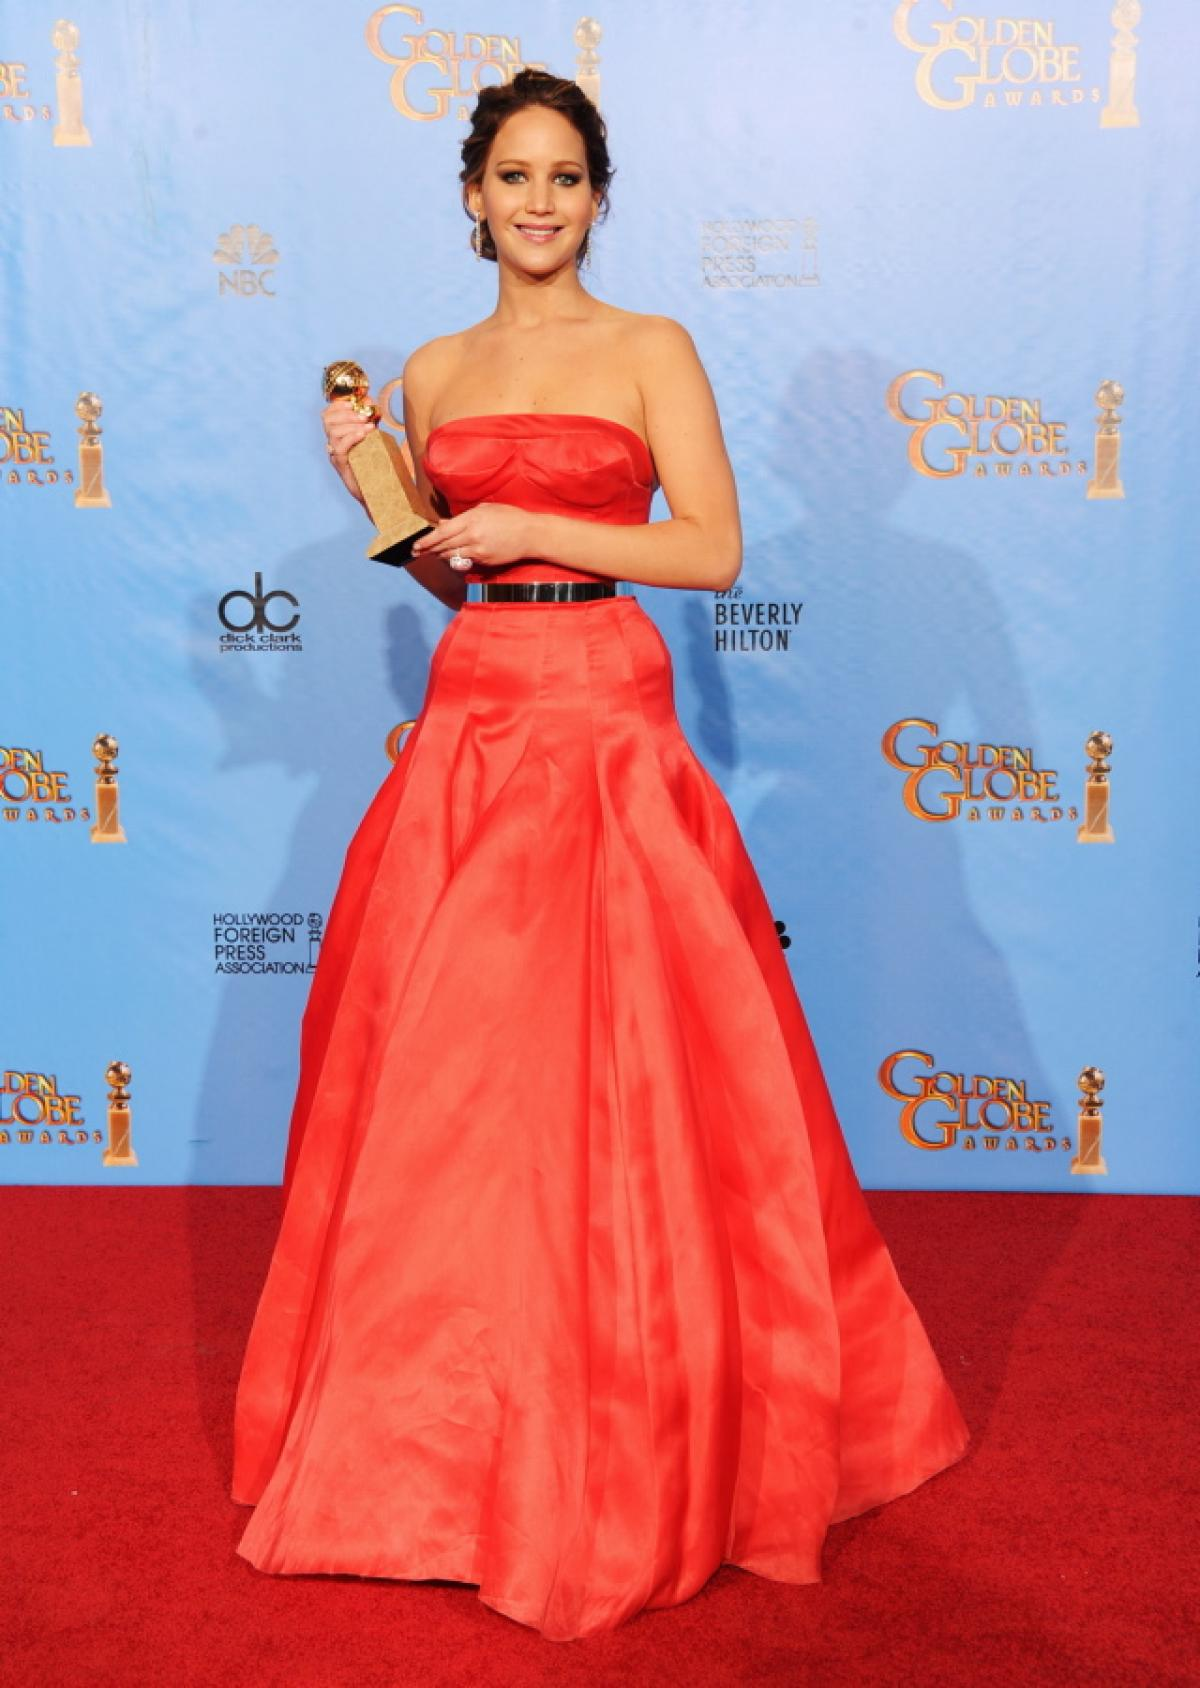 In a orange strapless Dior Couture gown at The Golden Globe A wards Jan 13,2013